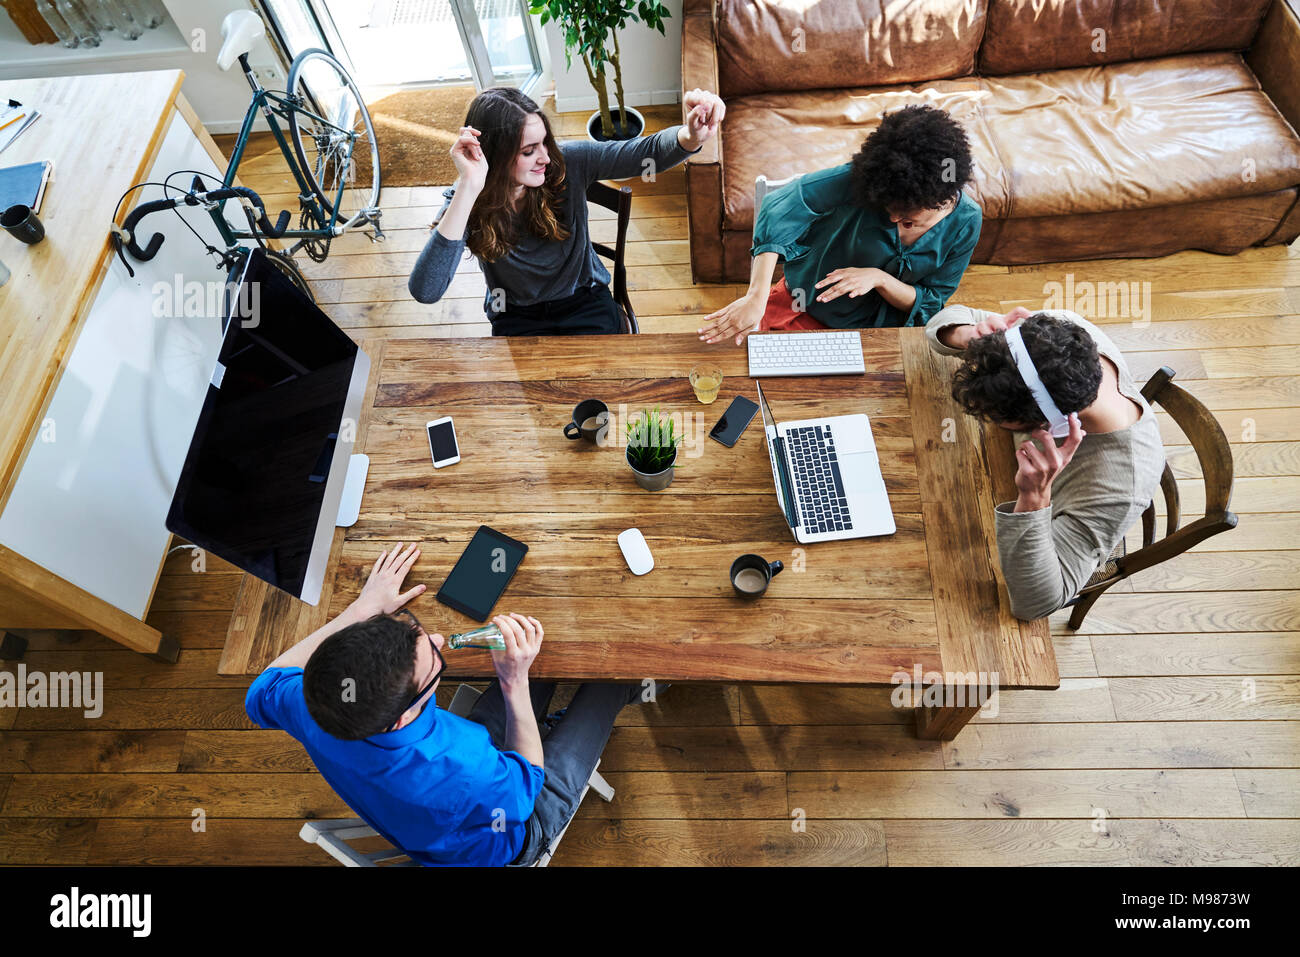 Elevated view of coworkers listening to music at wooden table in office - Stock Image